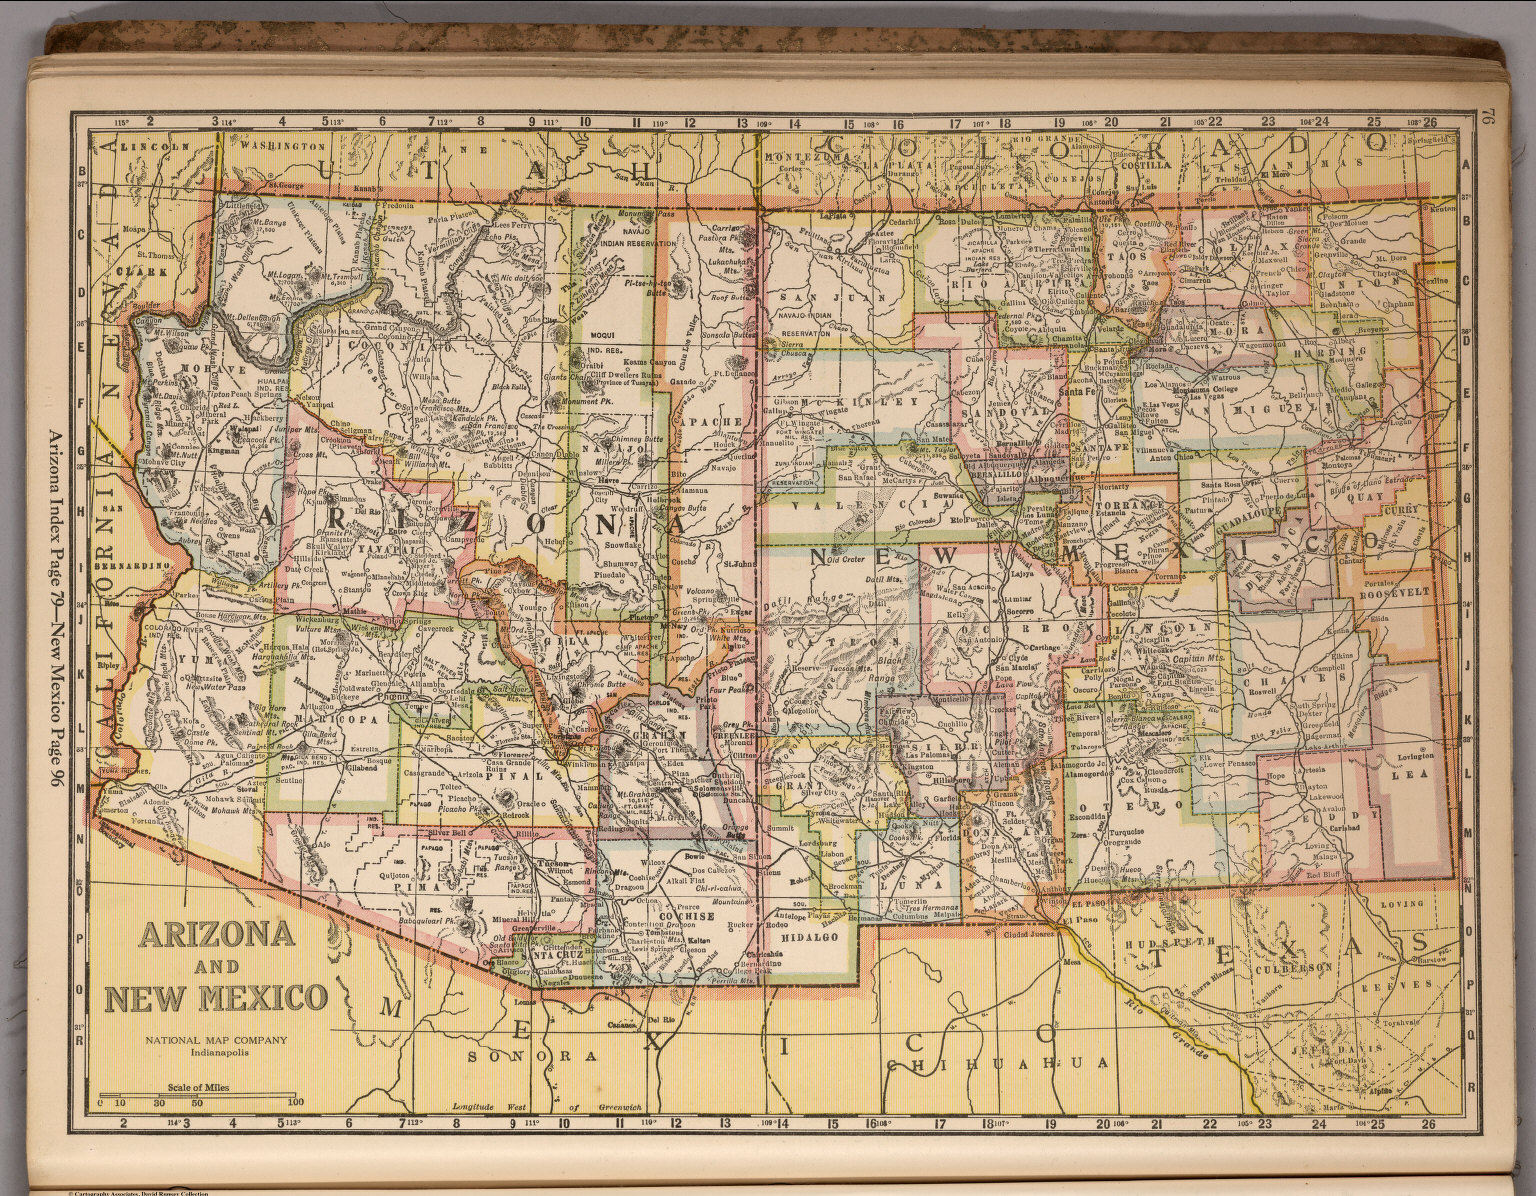 Arizona and New Mexico David Rumsey Historical Map Collection